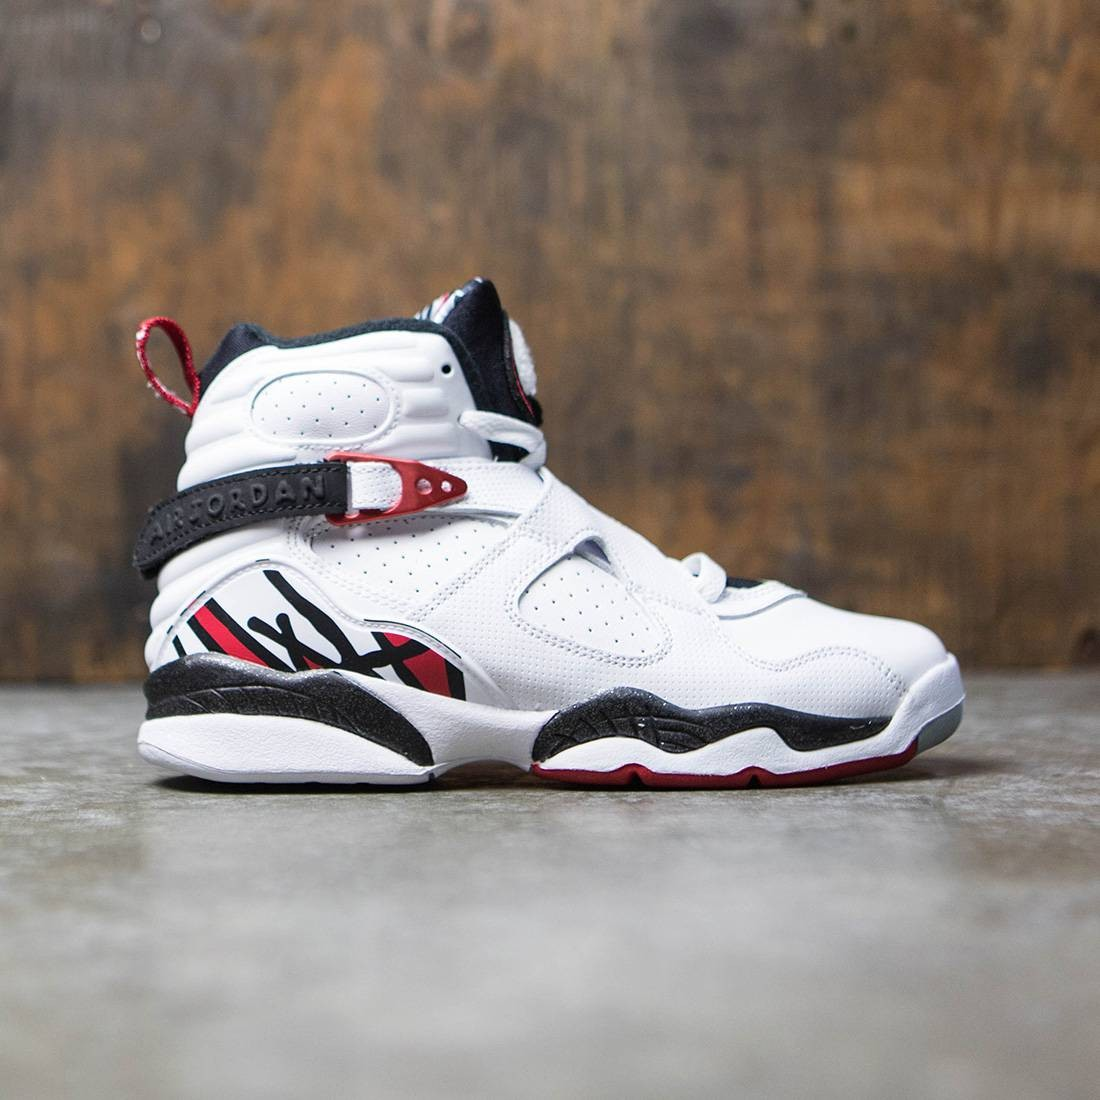 the latest 433f5 41c23 Jordan Big Kids AIR JORDAN 8 RETRO (GS) (white   gym red-black-wolf grey)